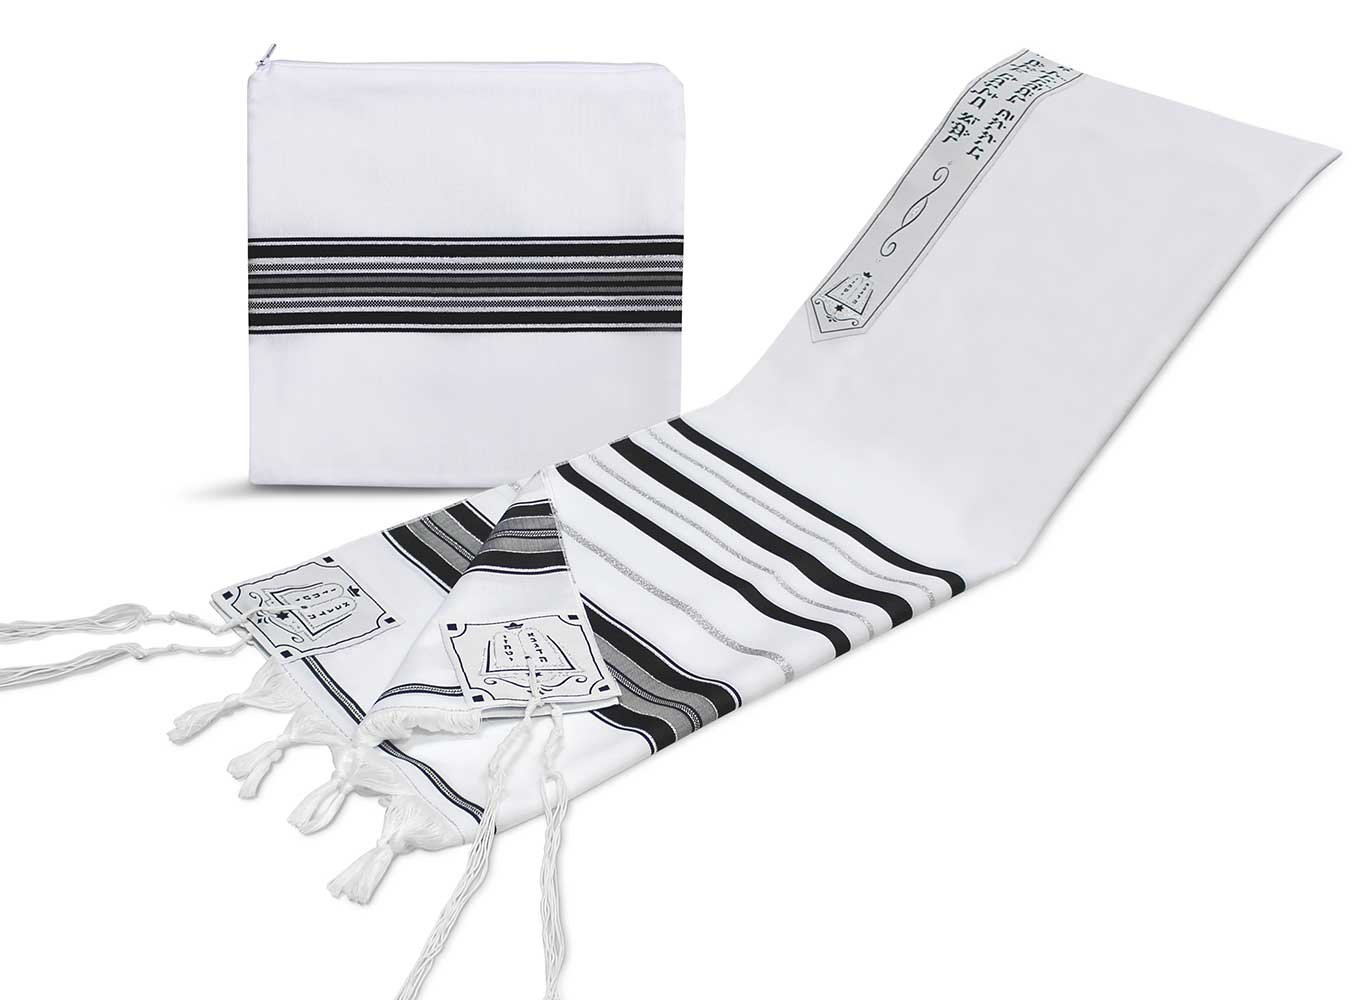 Zion Judaica Tallit Prayer Shawl - Fine Polyester Talis with a Matching Zippered Bag - Certified Kosher - Imported from Israel - Optional Personalization (Black Silver, 18'' x 72'' Personalized)